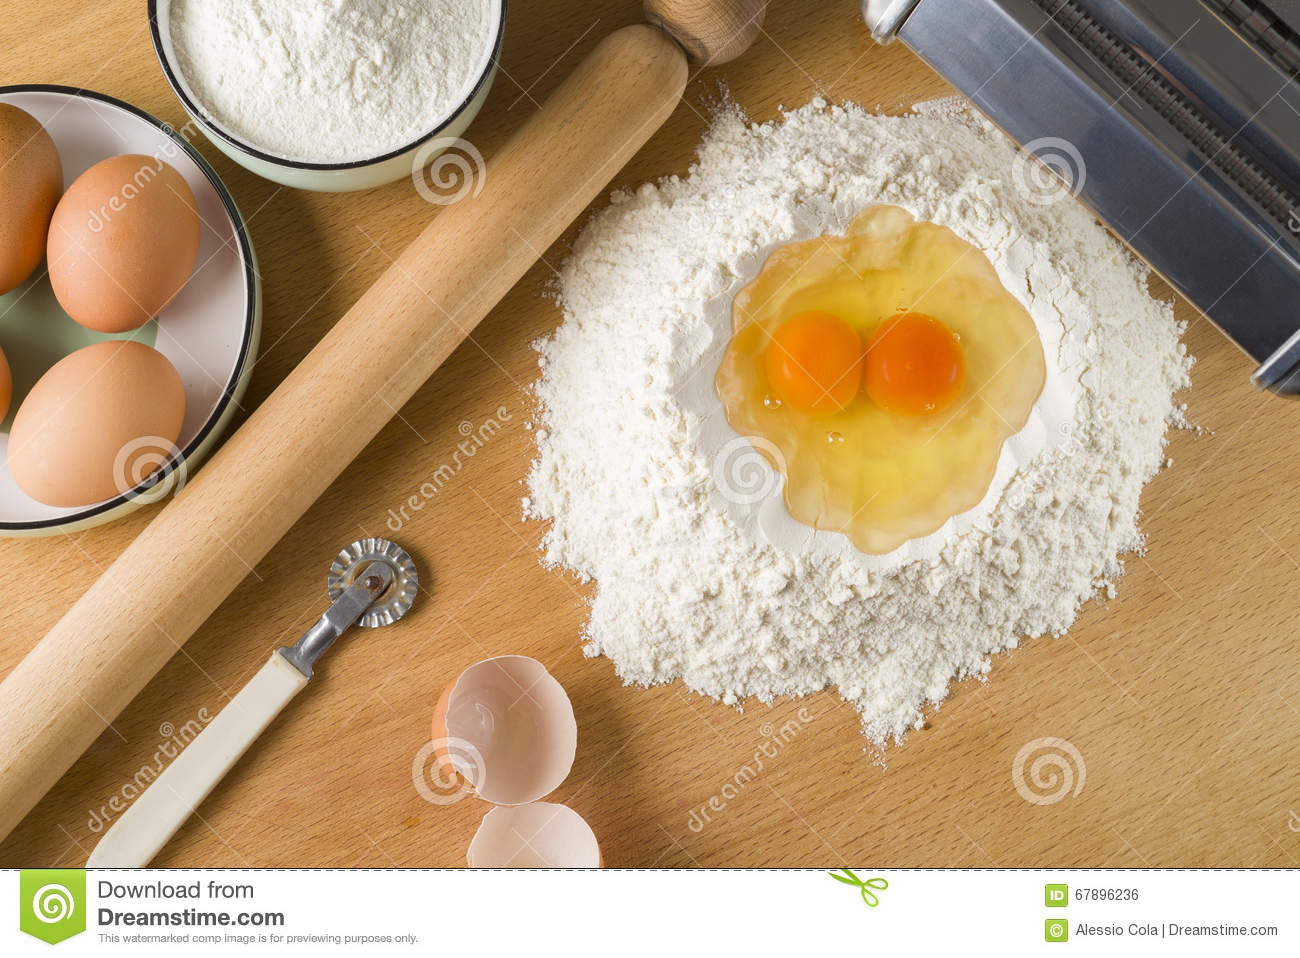 Raw Egg Pasta With Flour And Rolling Pin Stock Photo - Image: 67896236